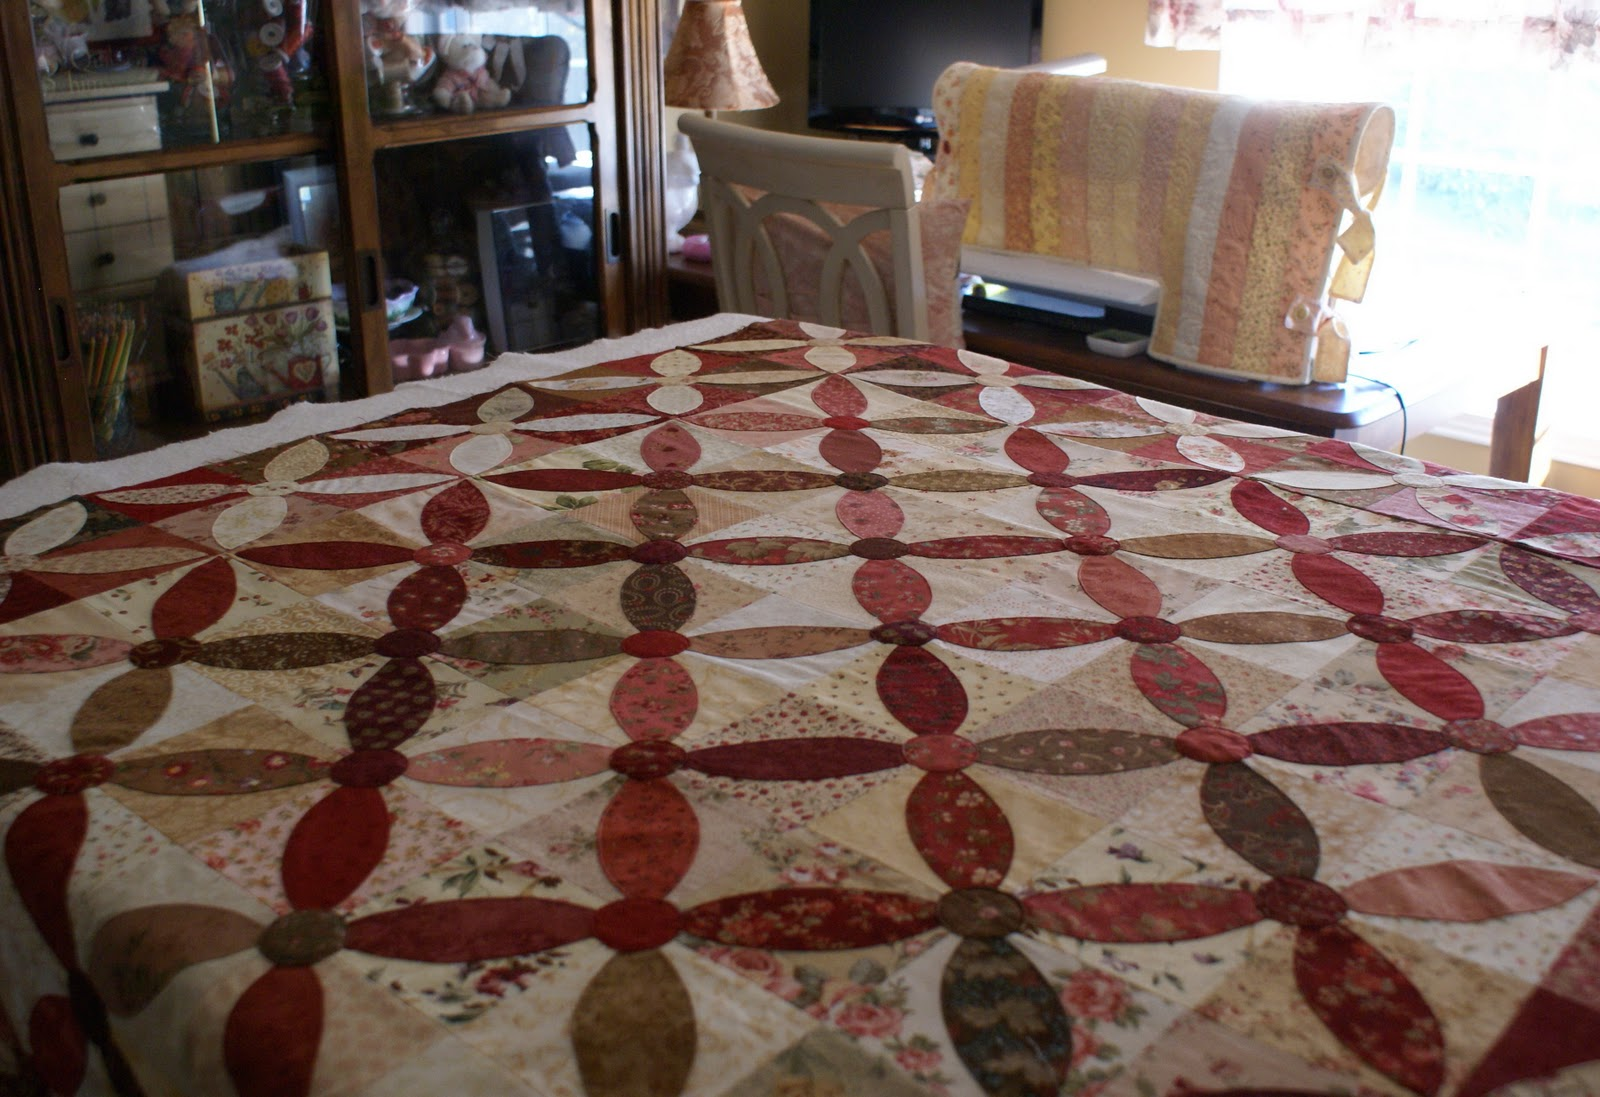 The Saturday Quilter: Machine Embroidery Quilting : embroidery quilting machine - Adamdwight.com